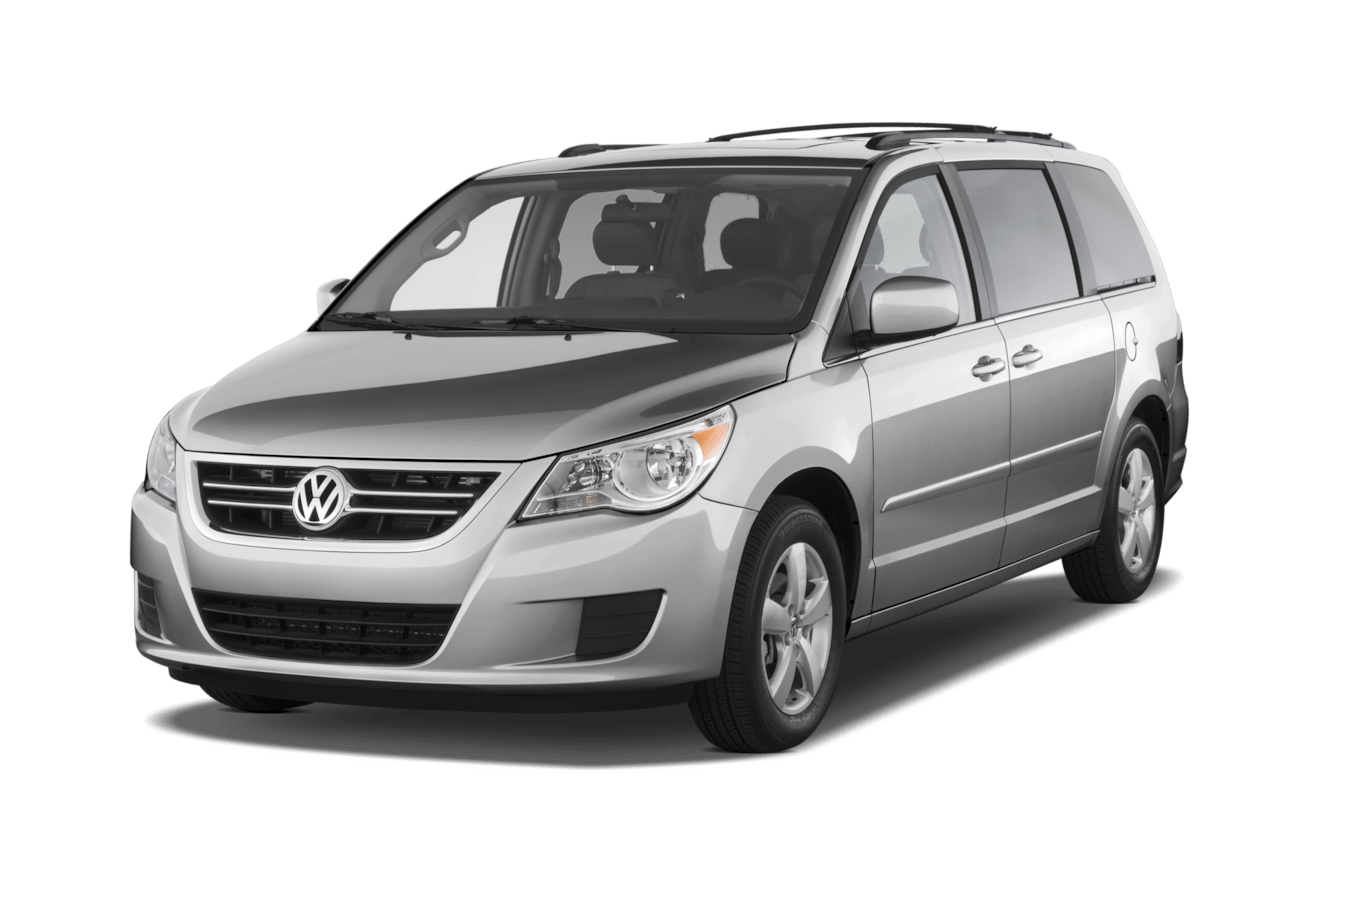 hight resolution of 2010 volkswagen routan reviews and rating motortrend rh motortrend com